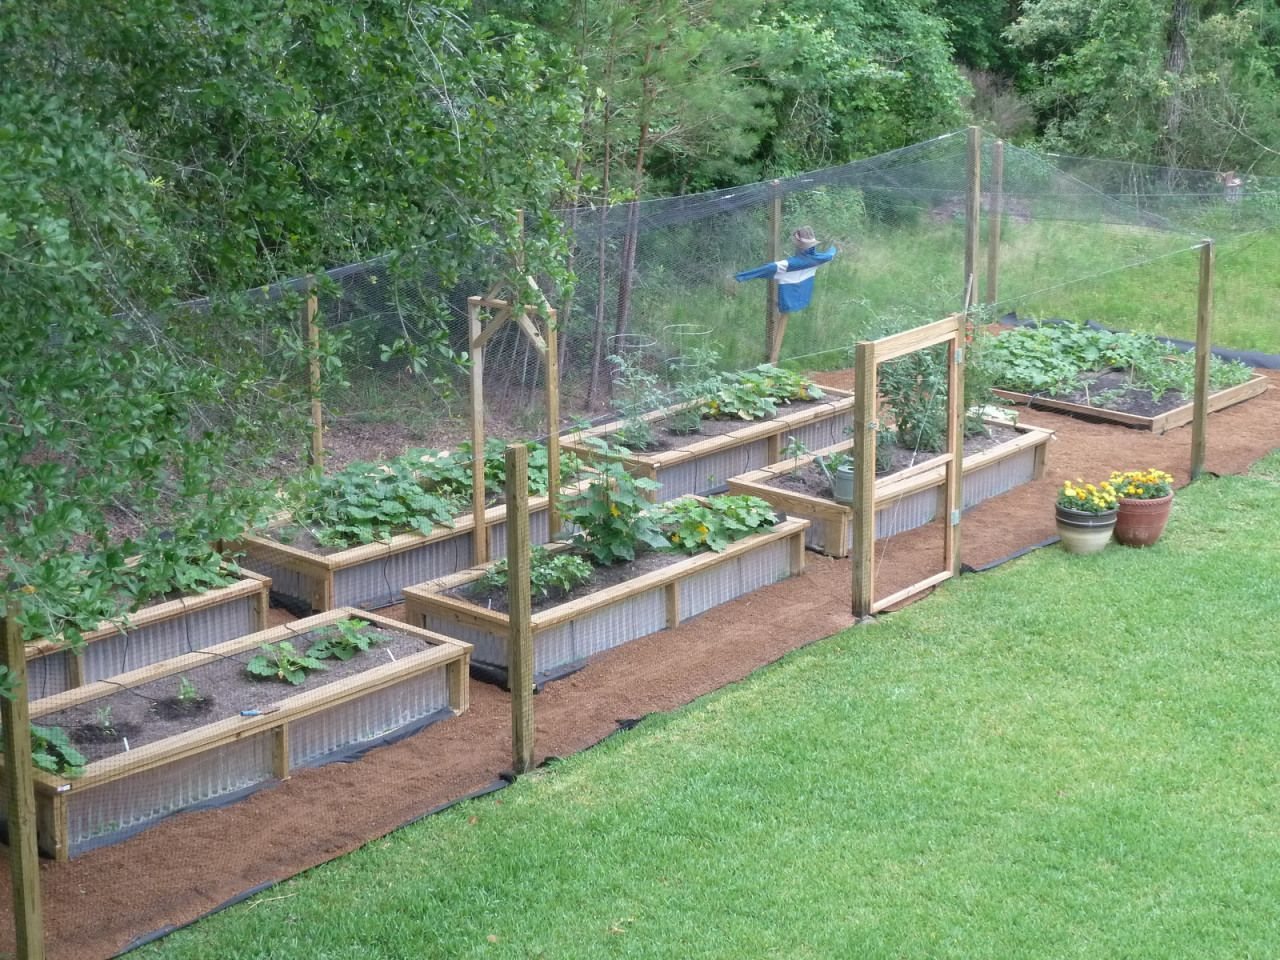 Week 6: Diseases, Garden Paths, and Outriggers (never a dull moment)